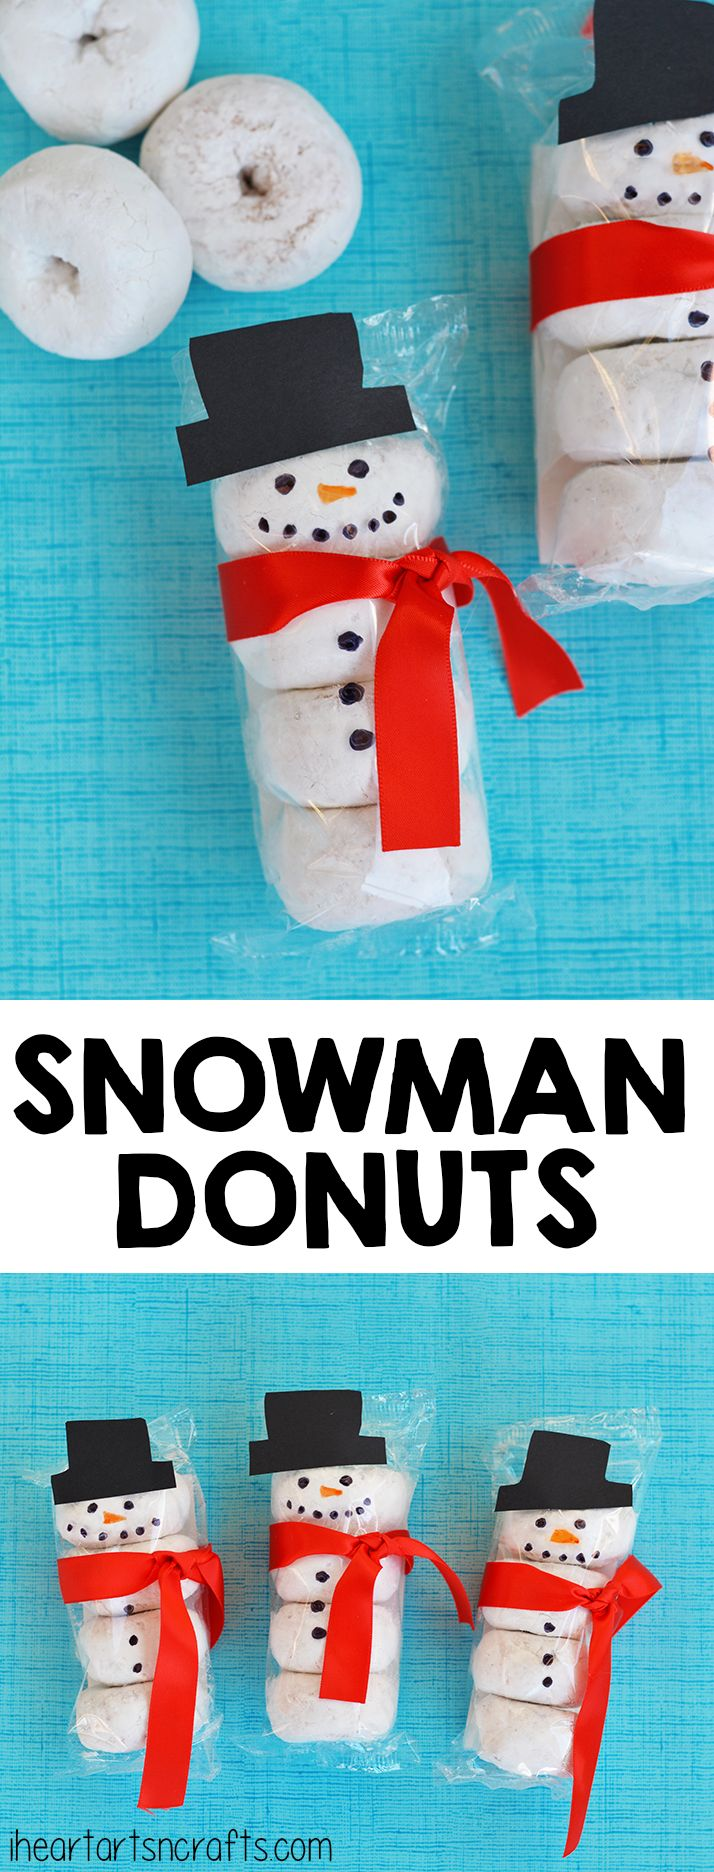 Diy christmas party decorations - Diy Your Photo Charms Compatible With Pandora Bracelets Snowman Donuts What A Cute Idea For A Classroom Snack Or Fun Treat For The Kids